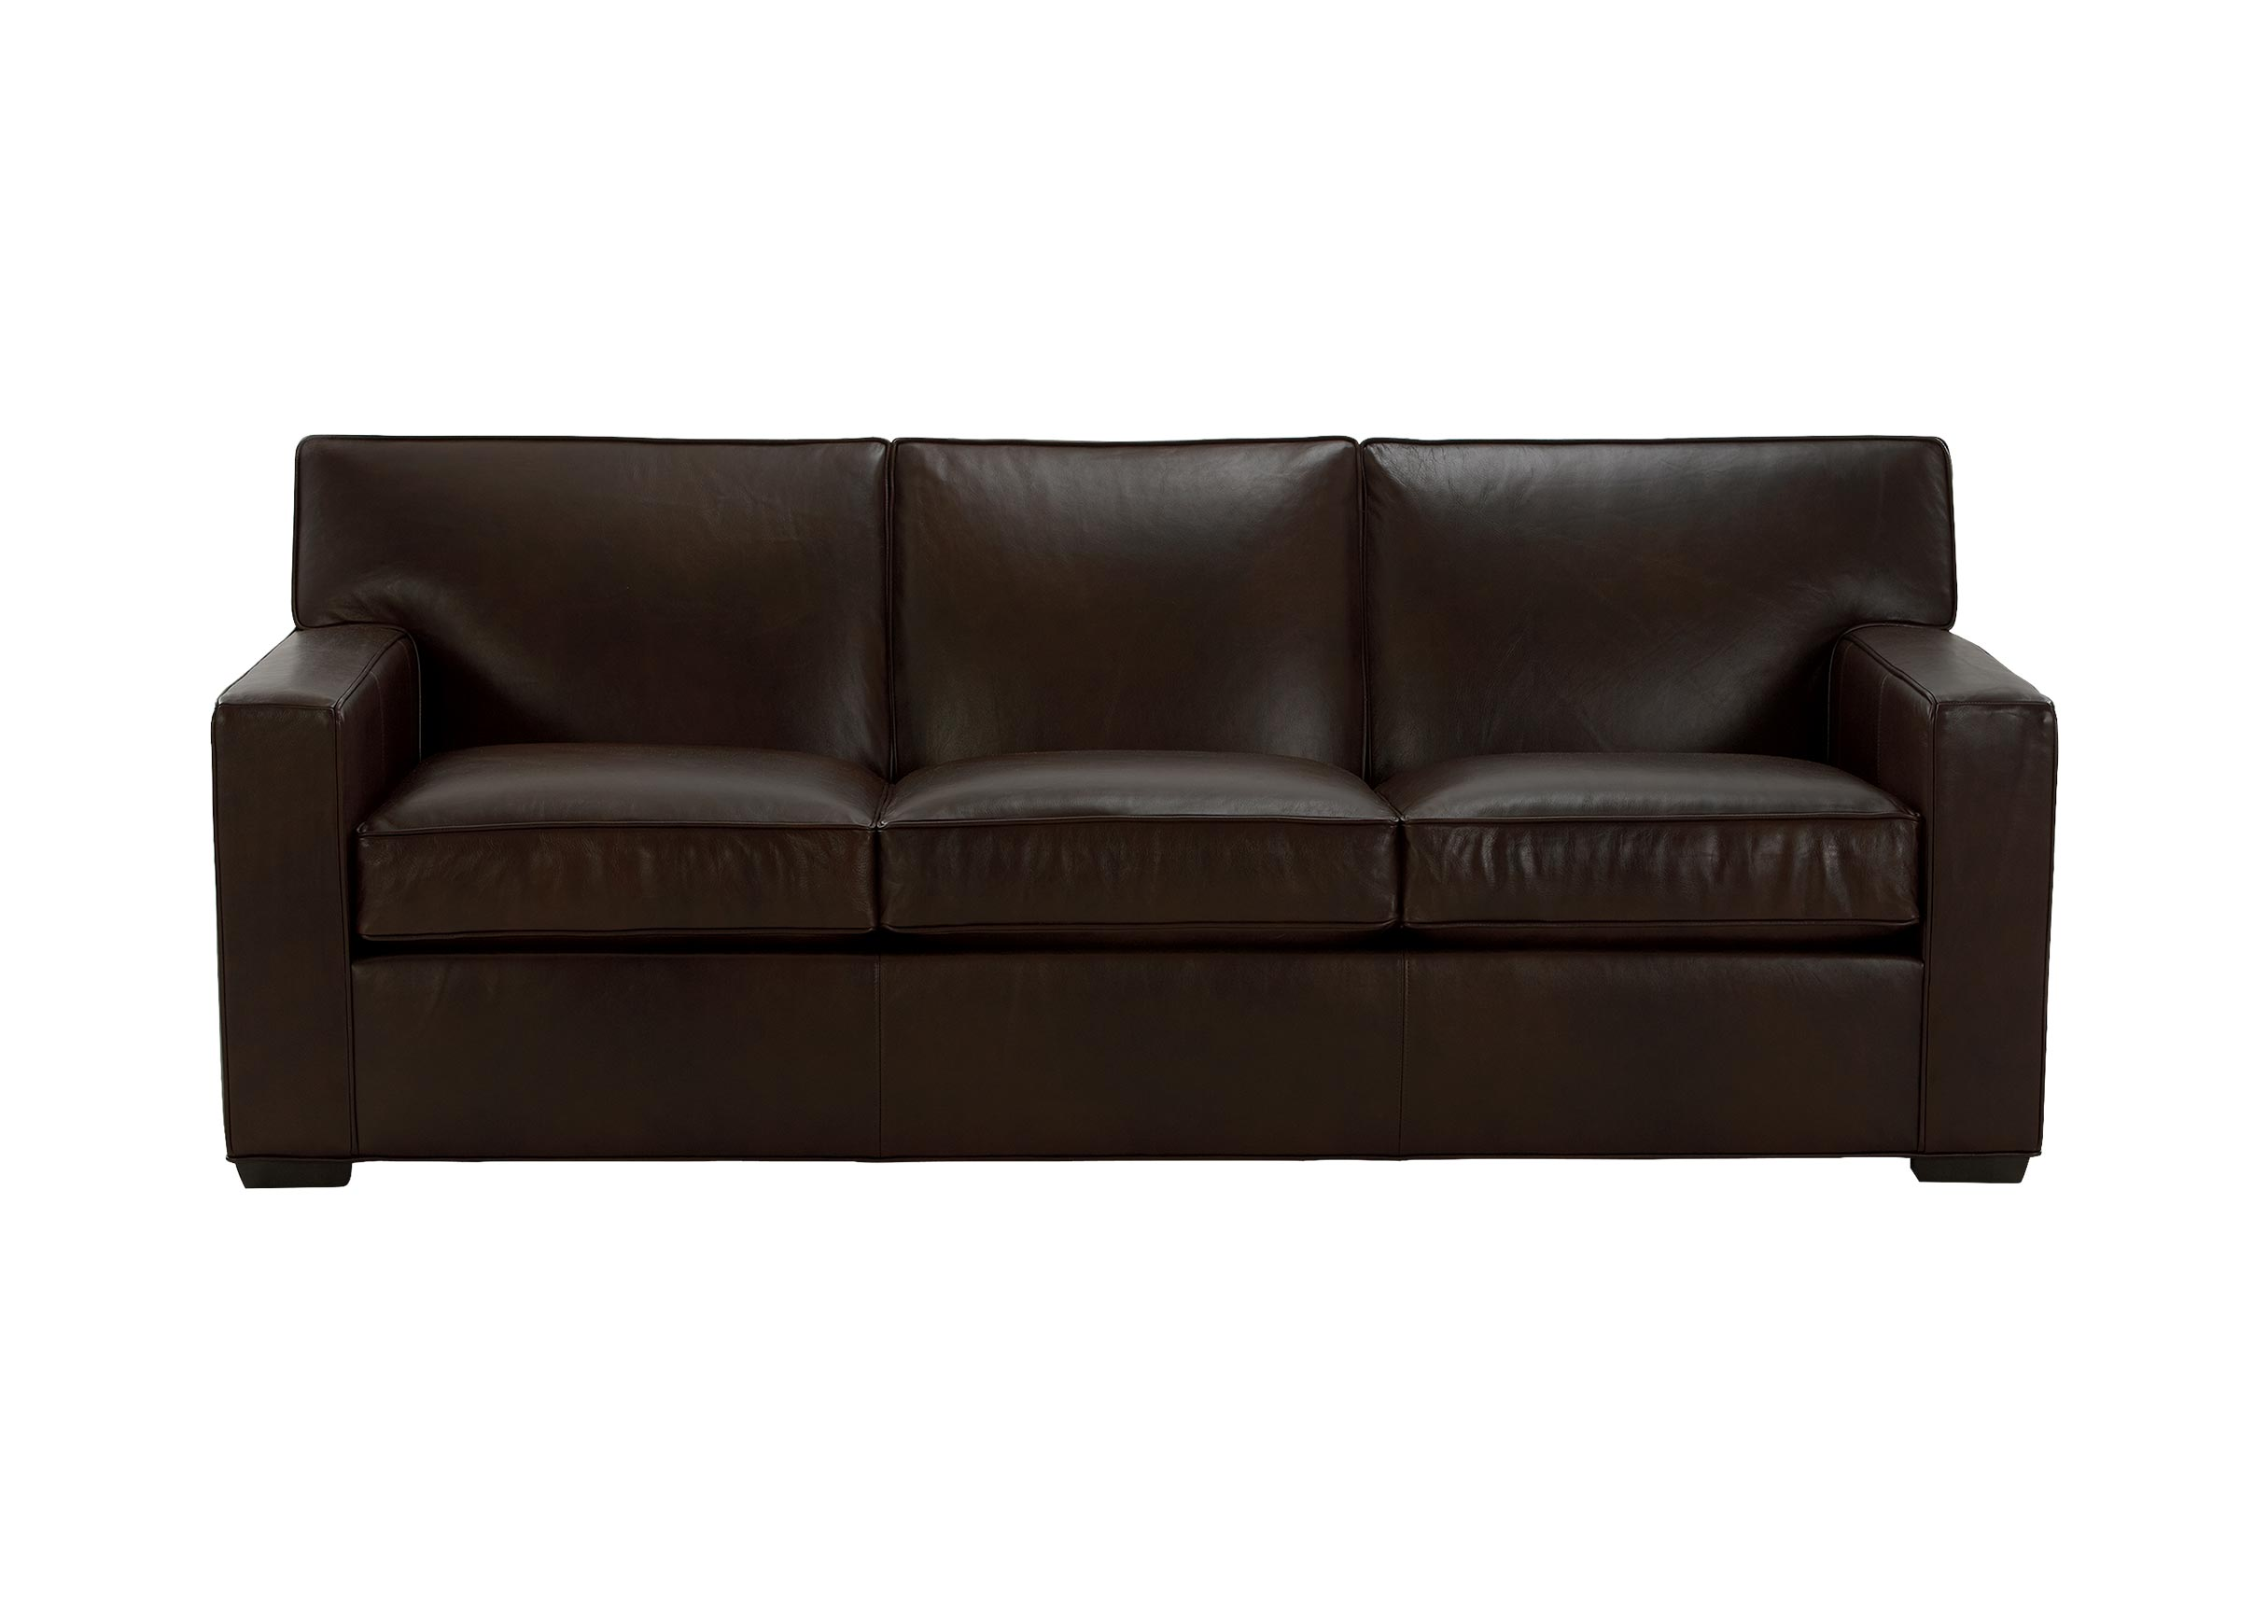 leathers sofa dark brown in living room kendall leather sofas and loveseats ethan allen